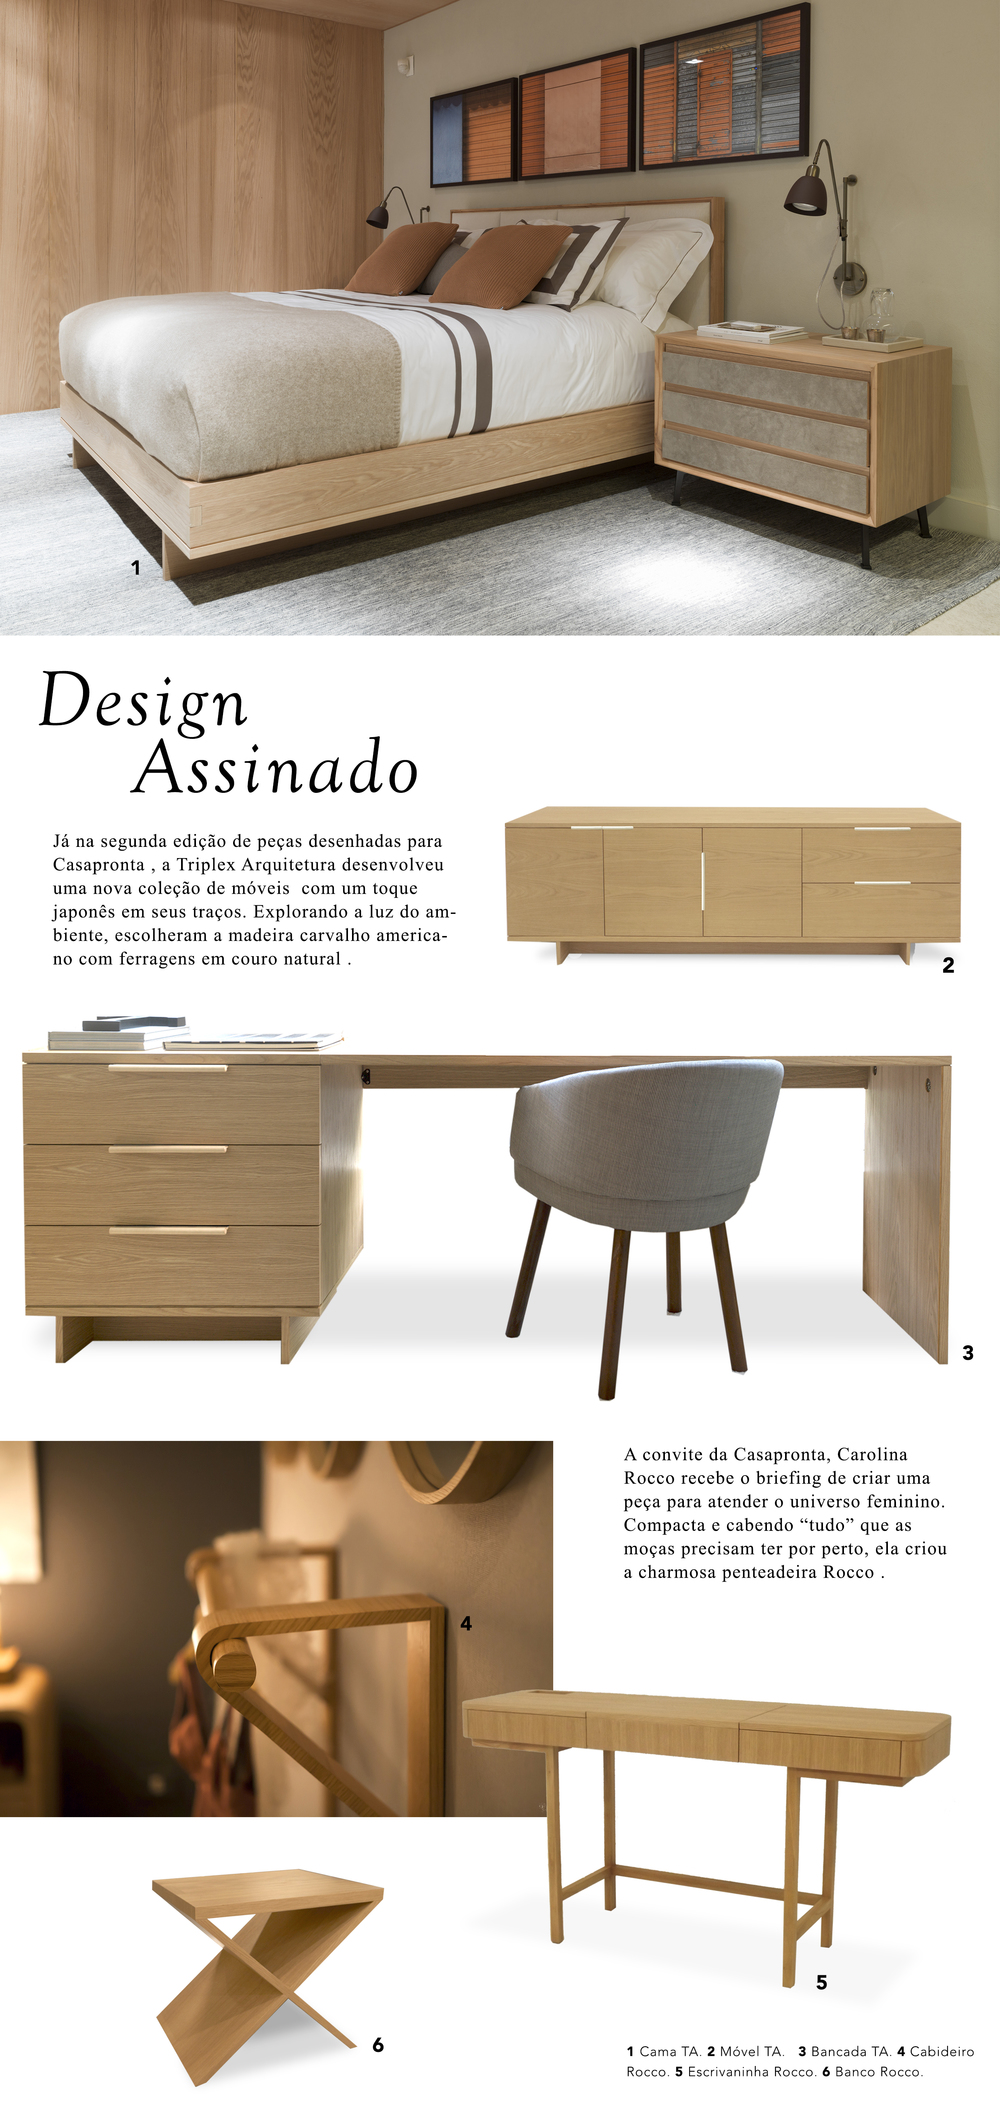 Editorial_Design assinado.jpg